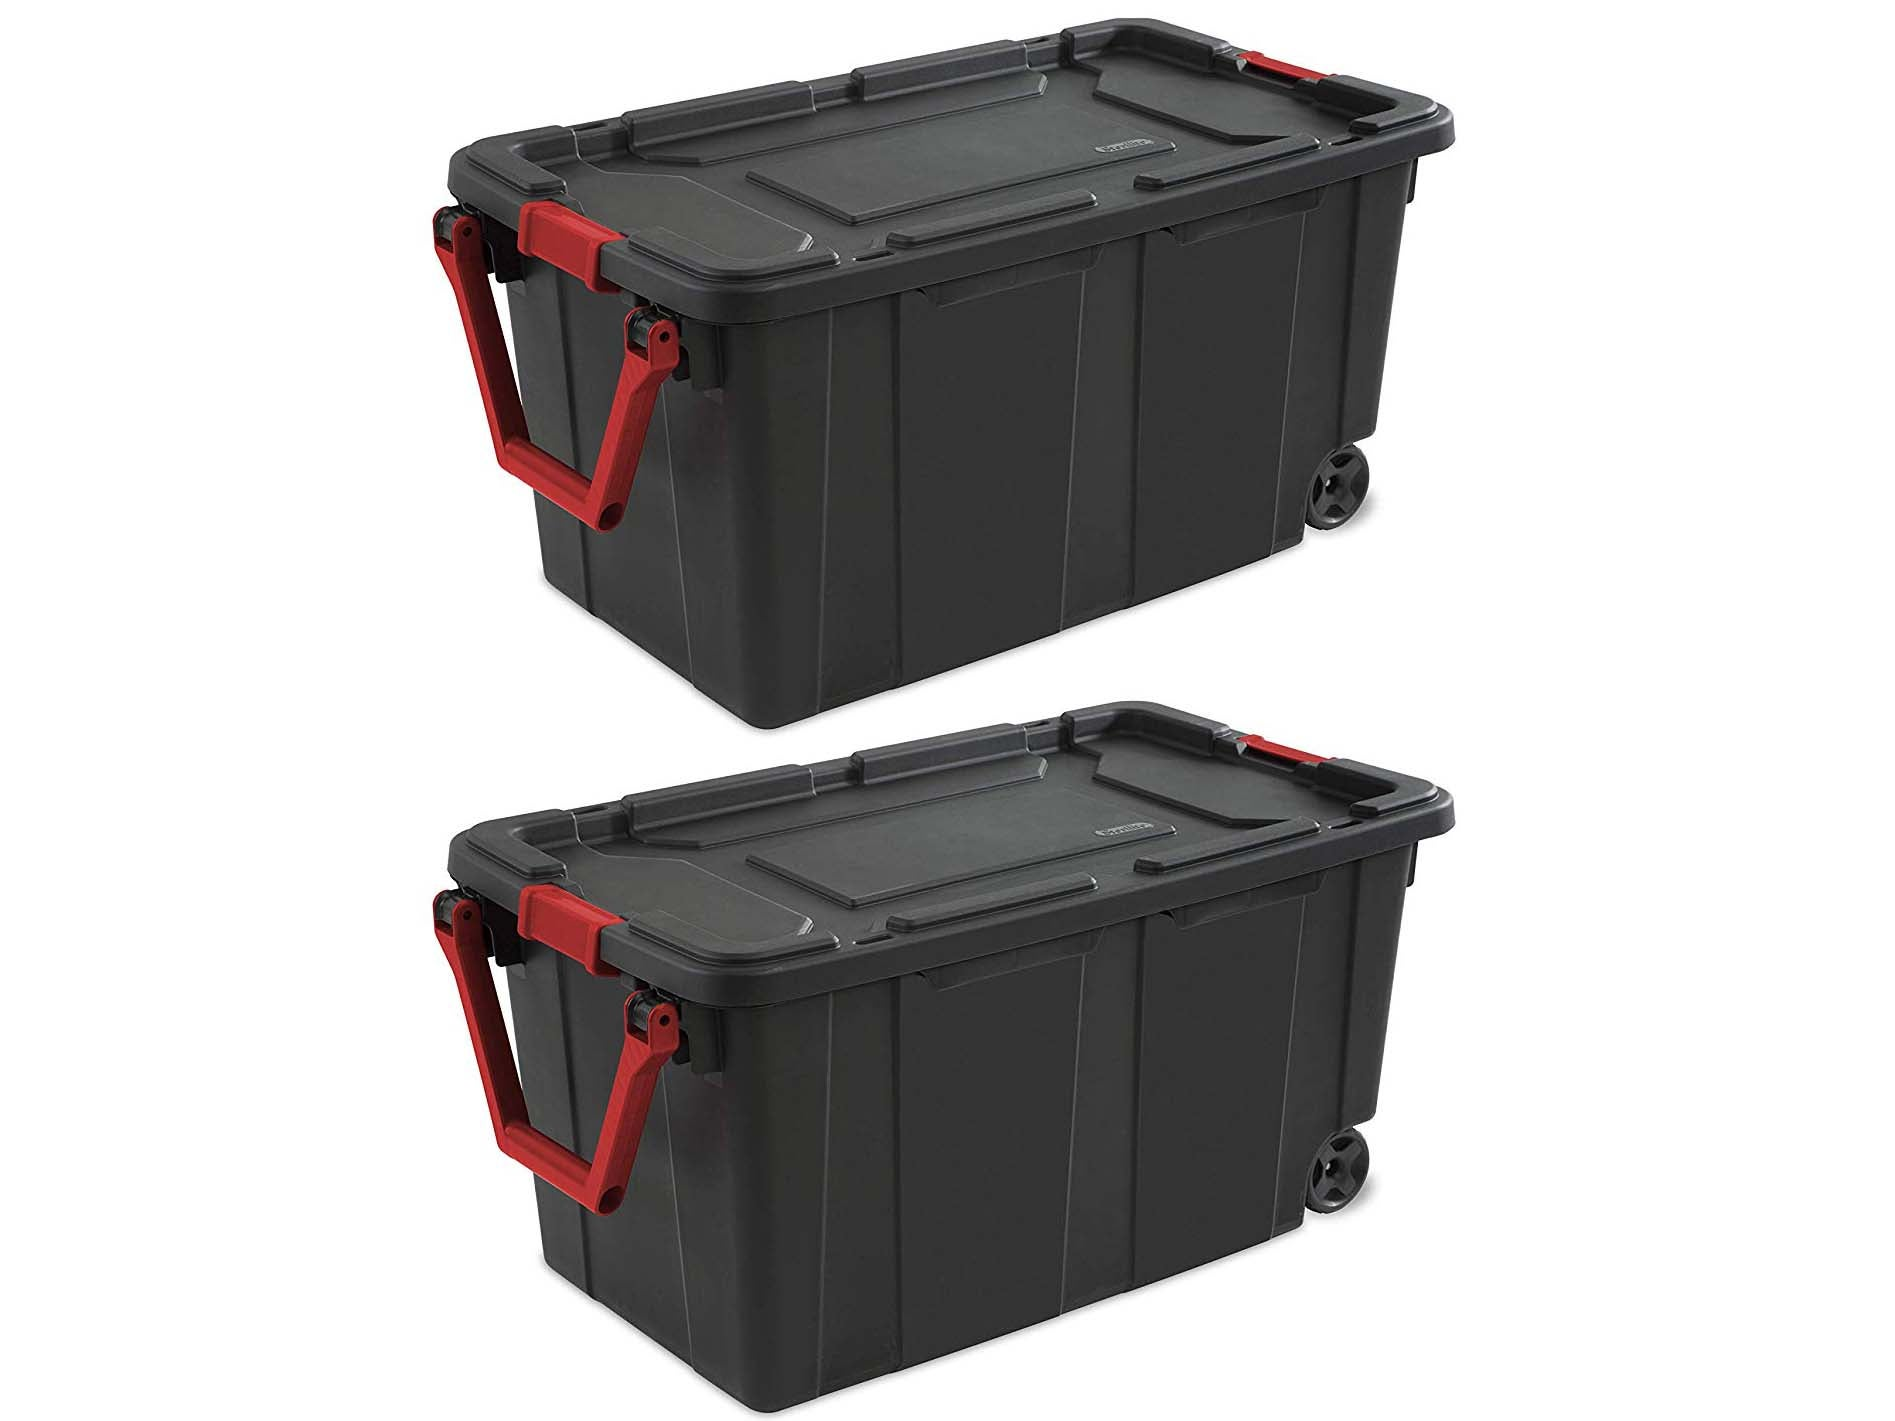 Sterilite 40 Gallon/151 Liter Wheeled Industrial Tote, Black Lid & Base w/ Racer Red Handle & Latches, 2-Pack